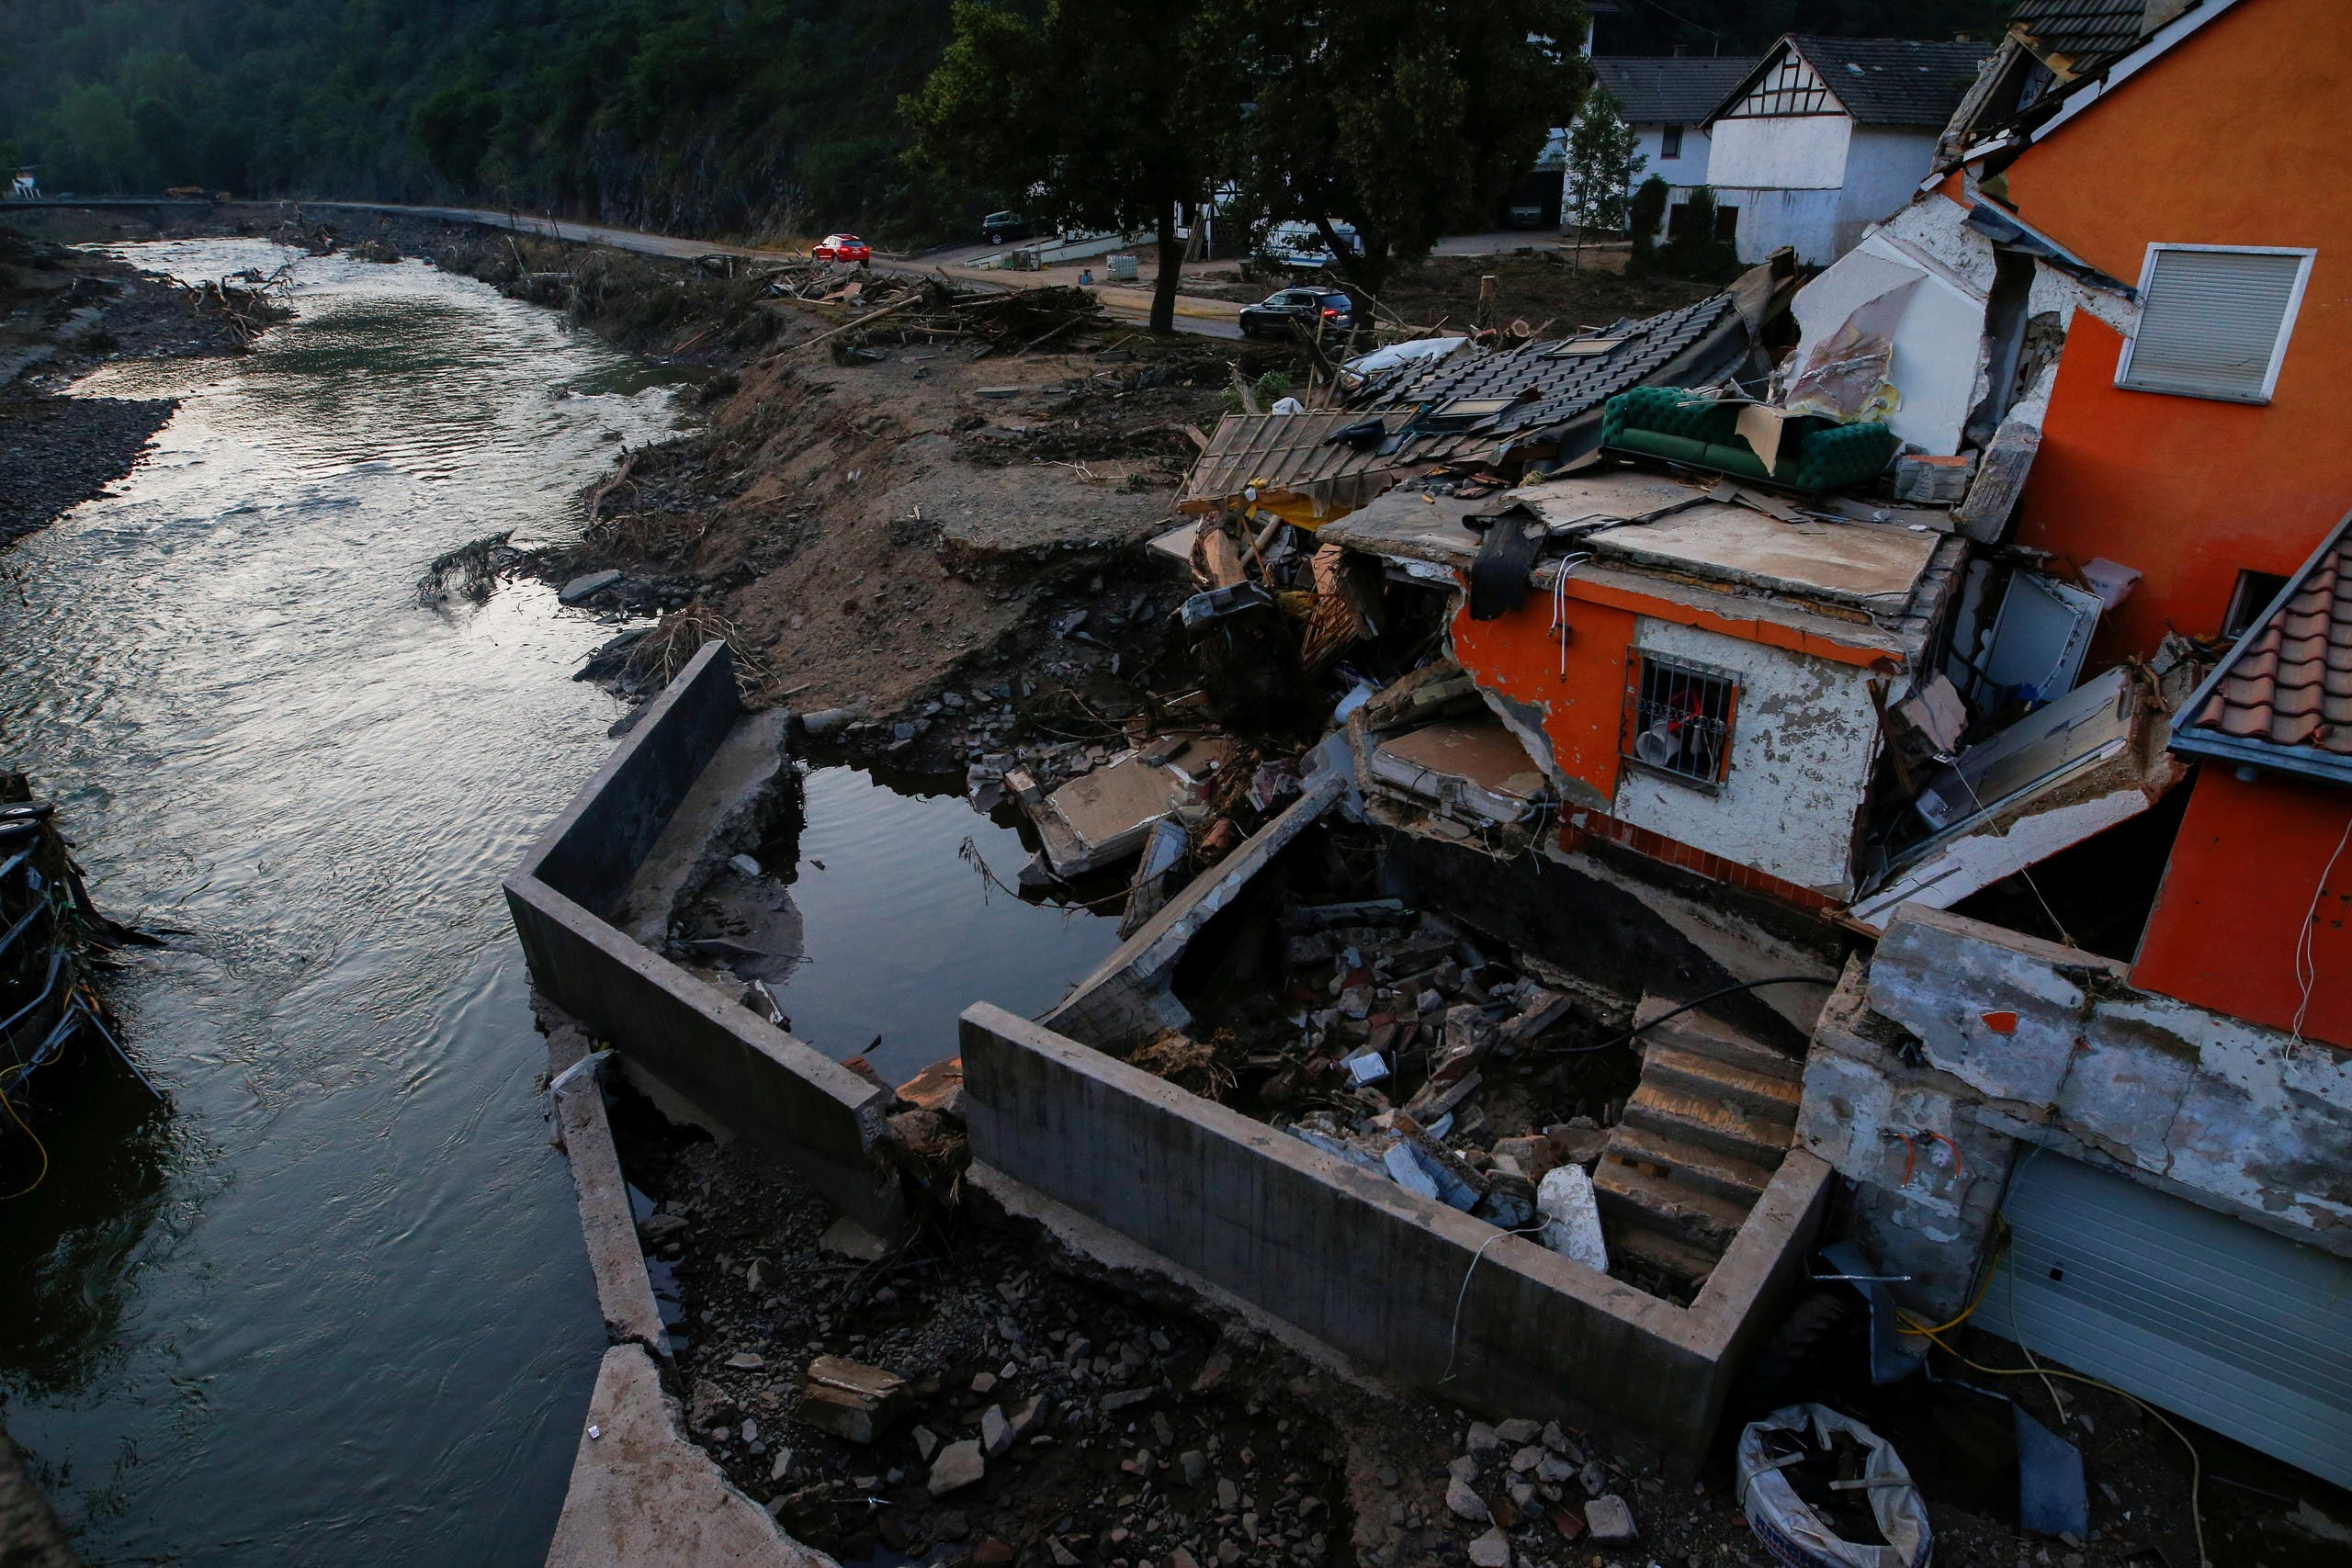 Damages are seen in an area affected by floods caused by heavy rainfalls in Schuld, Germany, July 20, 2021. (Reuters)